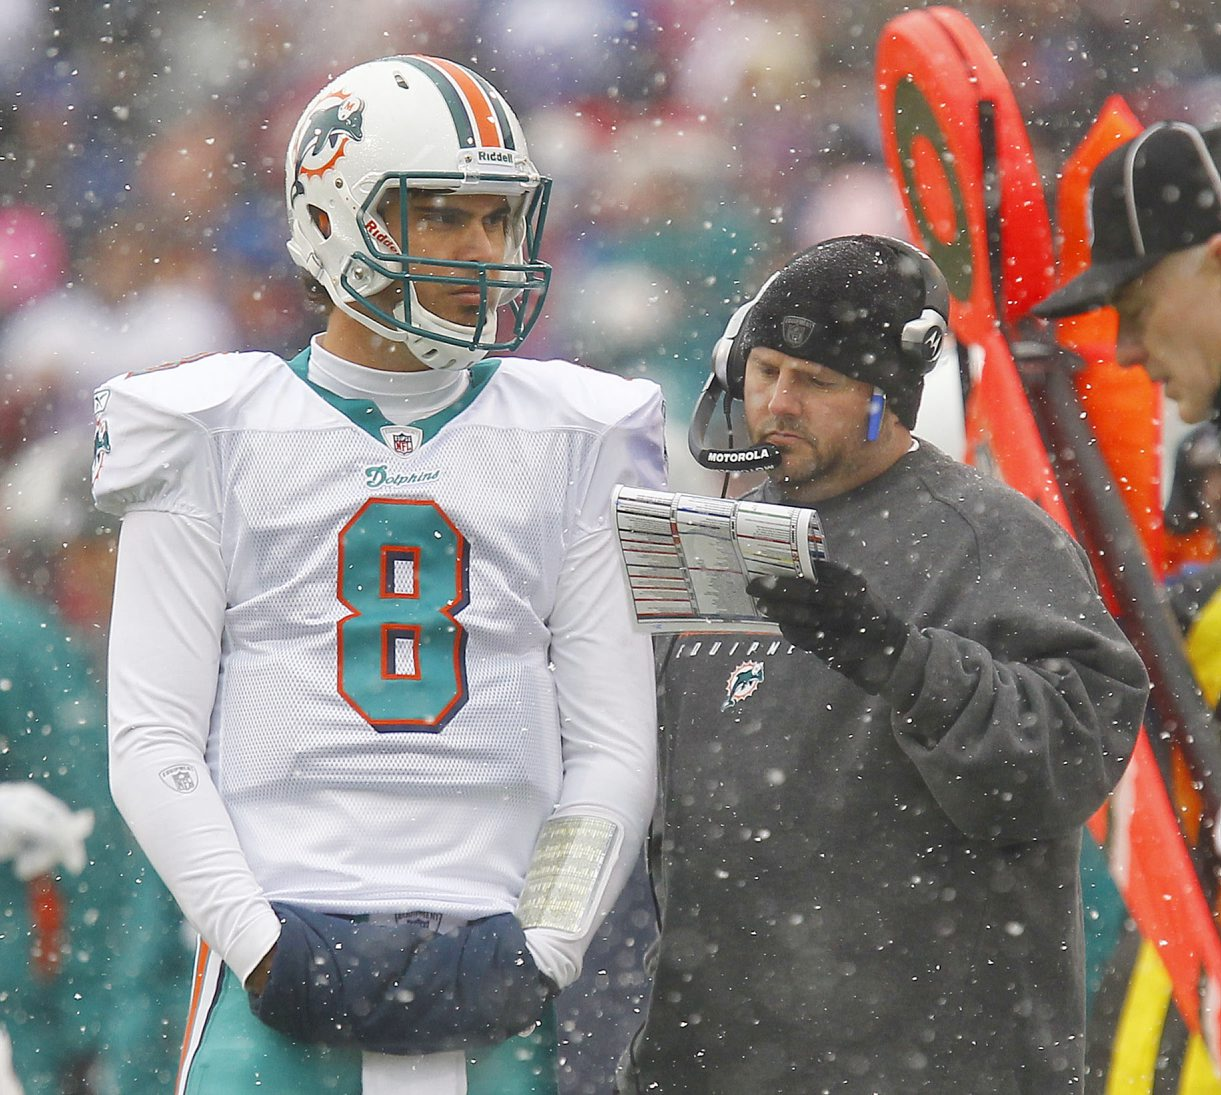 Brian Daboll, during his tenure as offensive coordinator for the Miami Dolphins, consults with quarterback Matt Moore during a game at the Bills on Dec. 18, 2011. (Mark Mulville/Buffalo News)